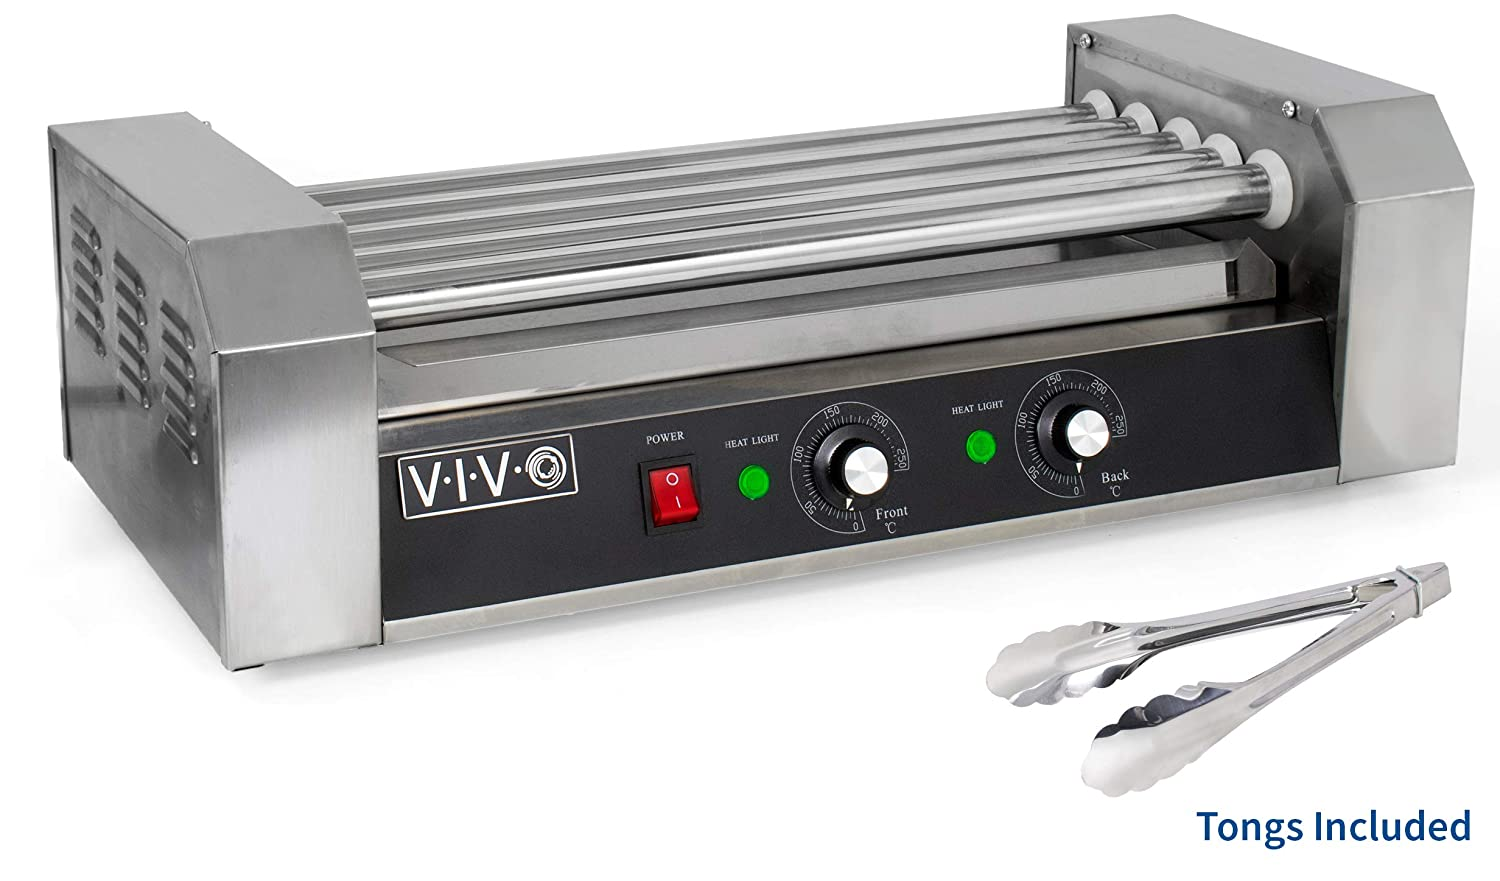 VIVO Electric 12 Hot Dog & Five (5) Roller Grill Cooker Warmer Machine (HOTDG-V005)